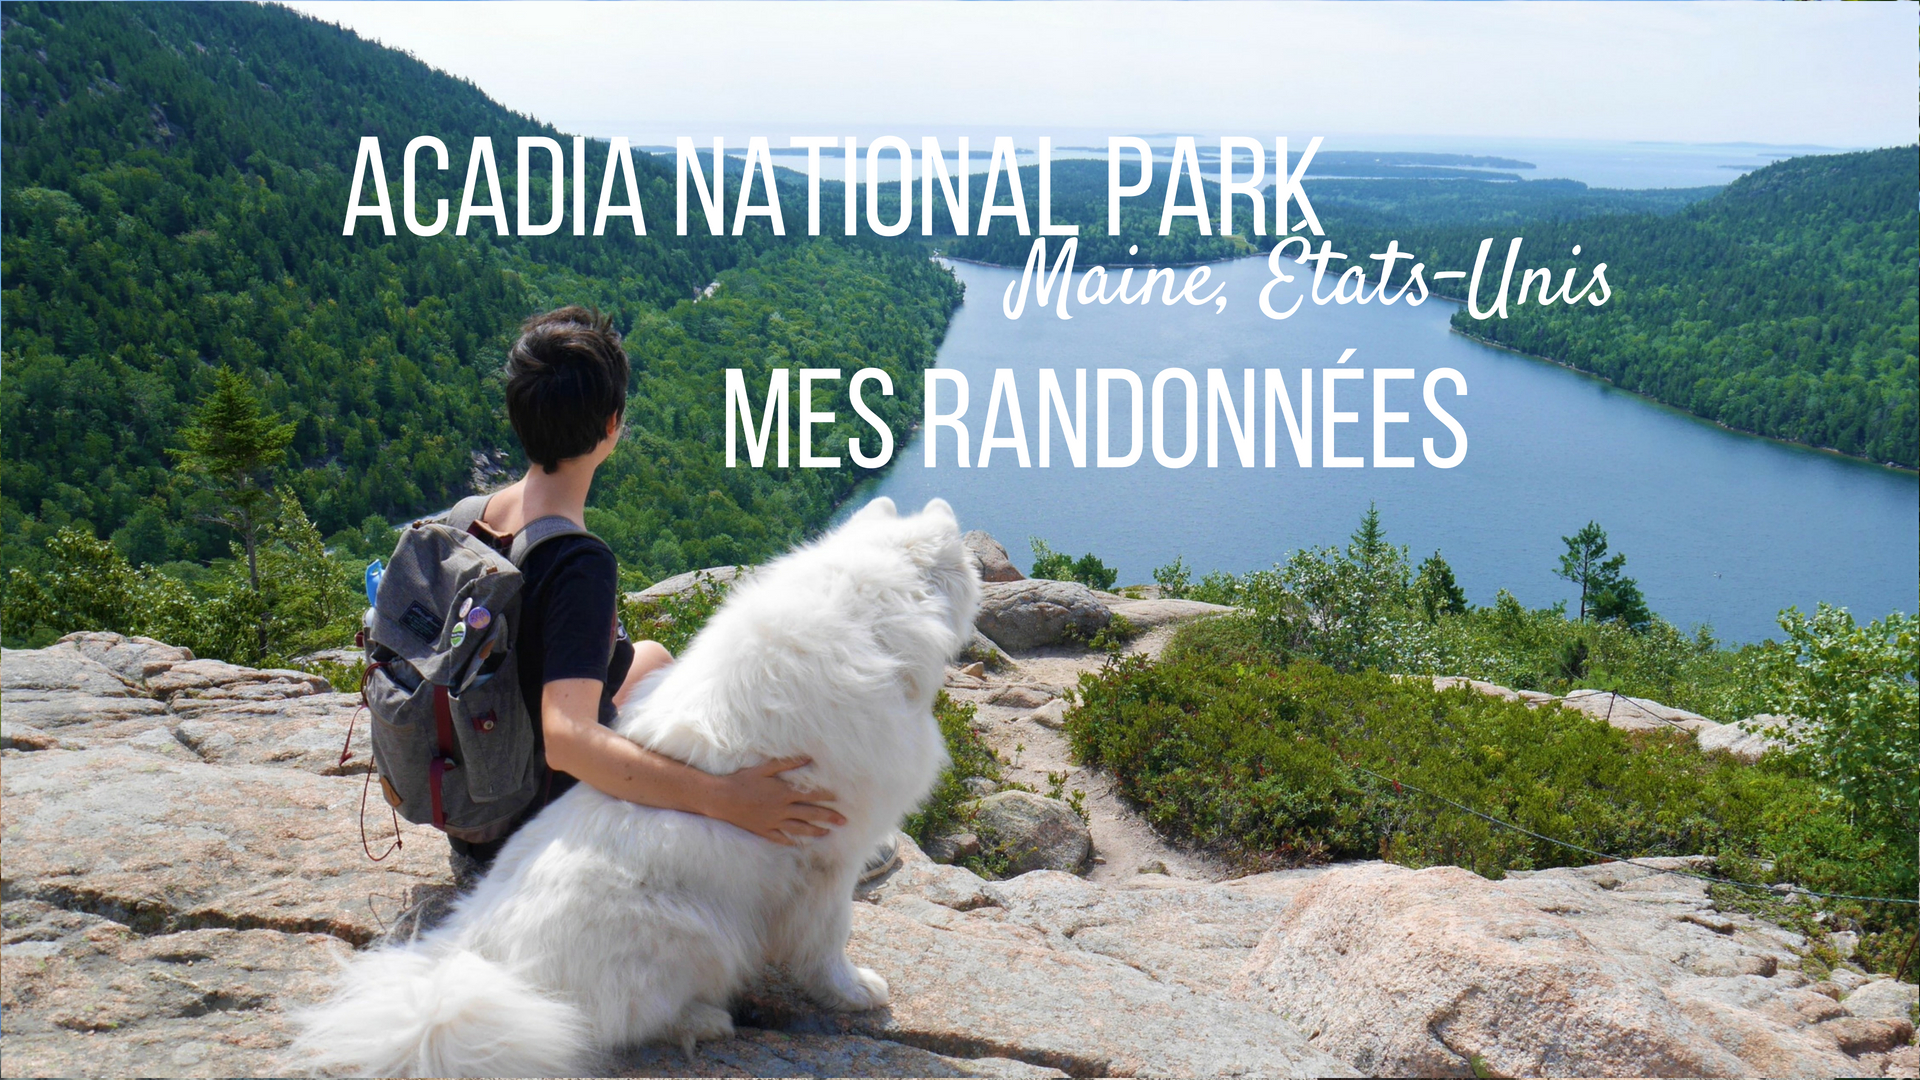 randonnees acadia national park maine etats-unis blog voyage road-trip arpenter le chemin